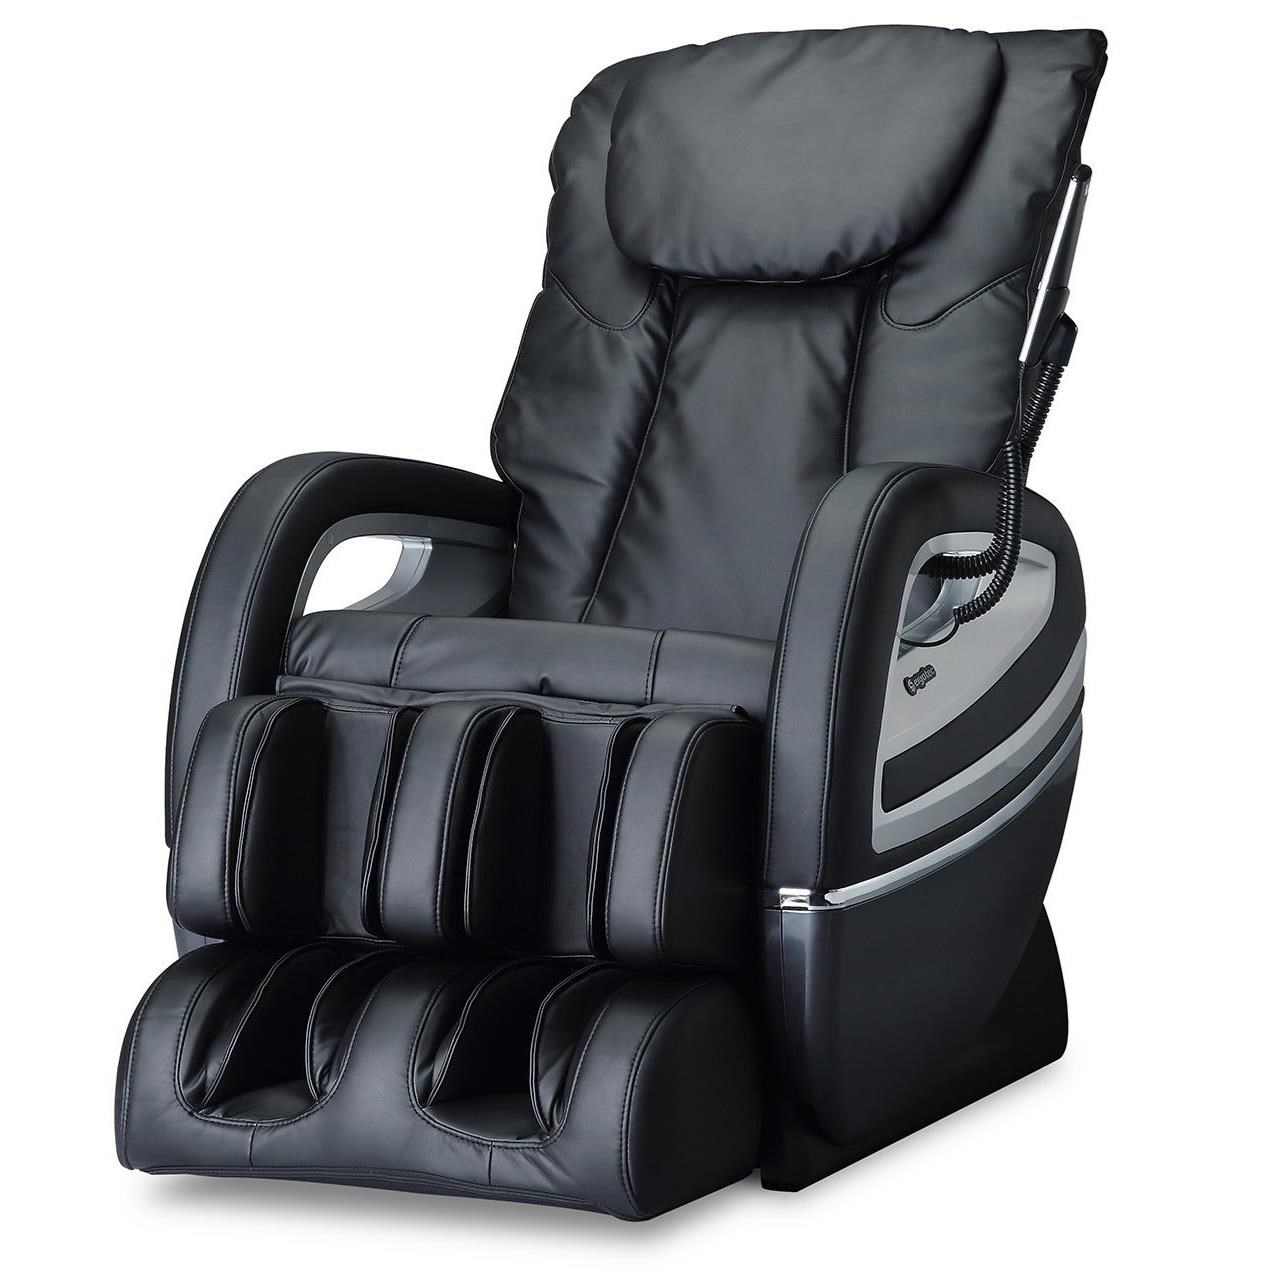 EC-360 Power Reclining 2D Massage Chair by Cozzia at Morris Home